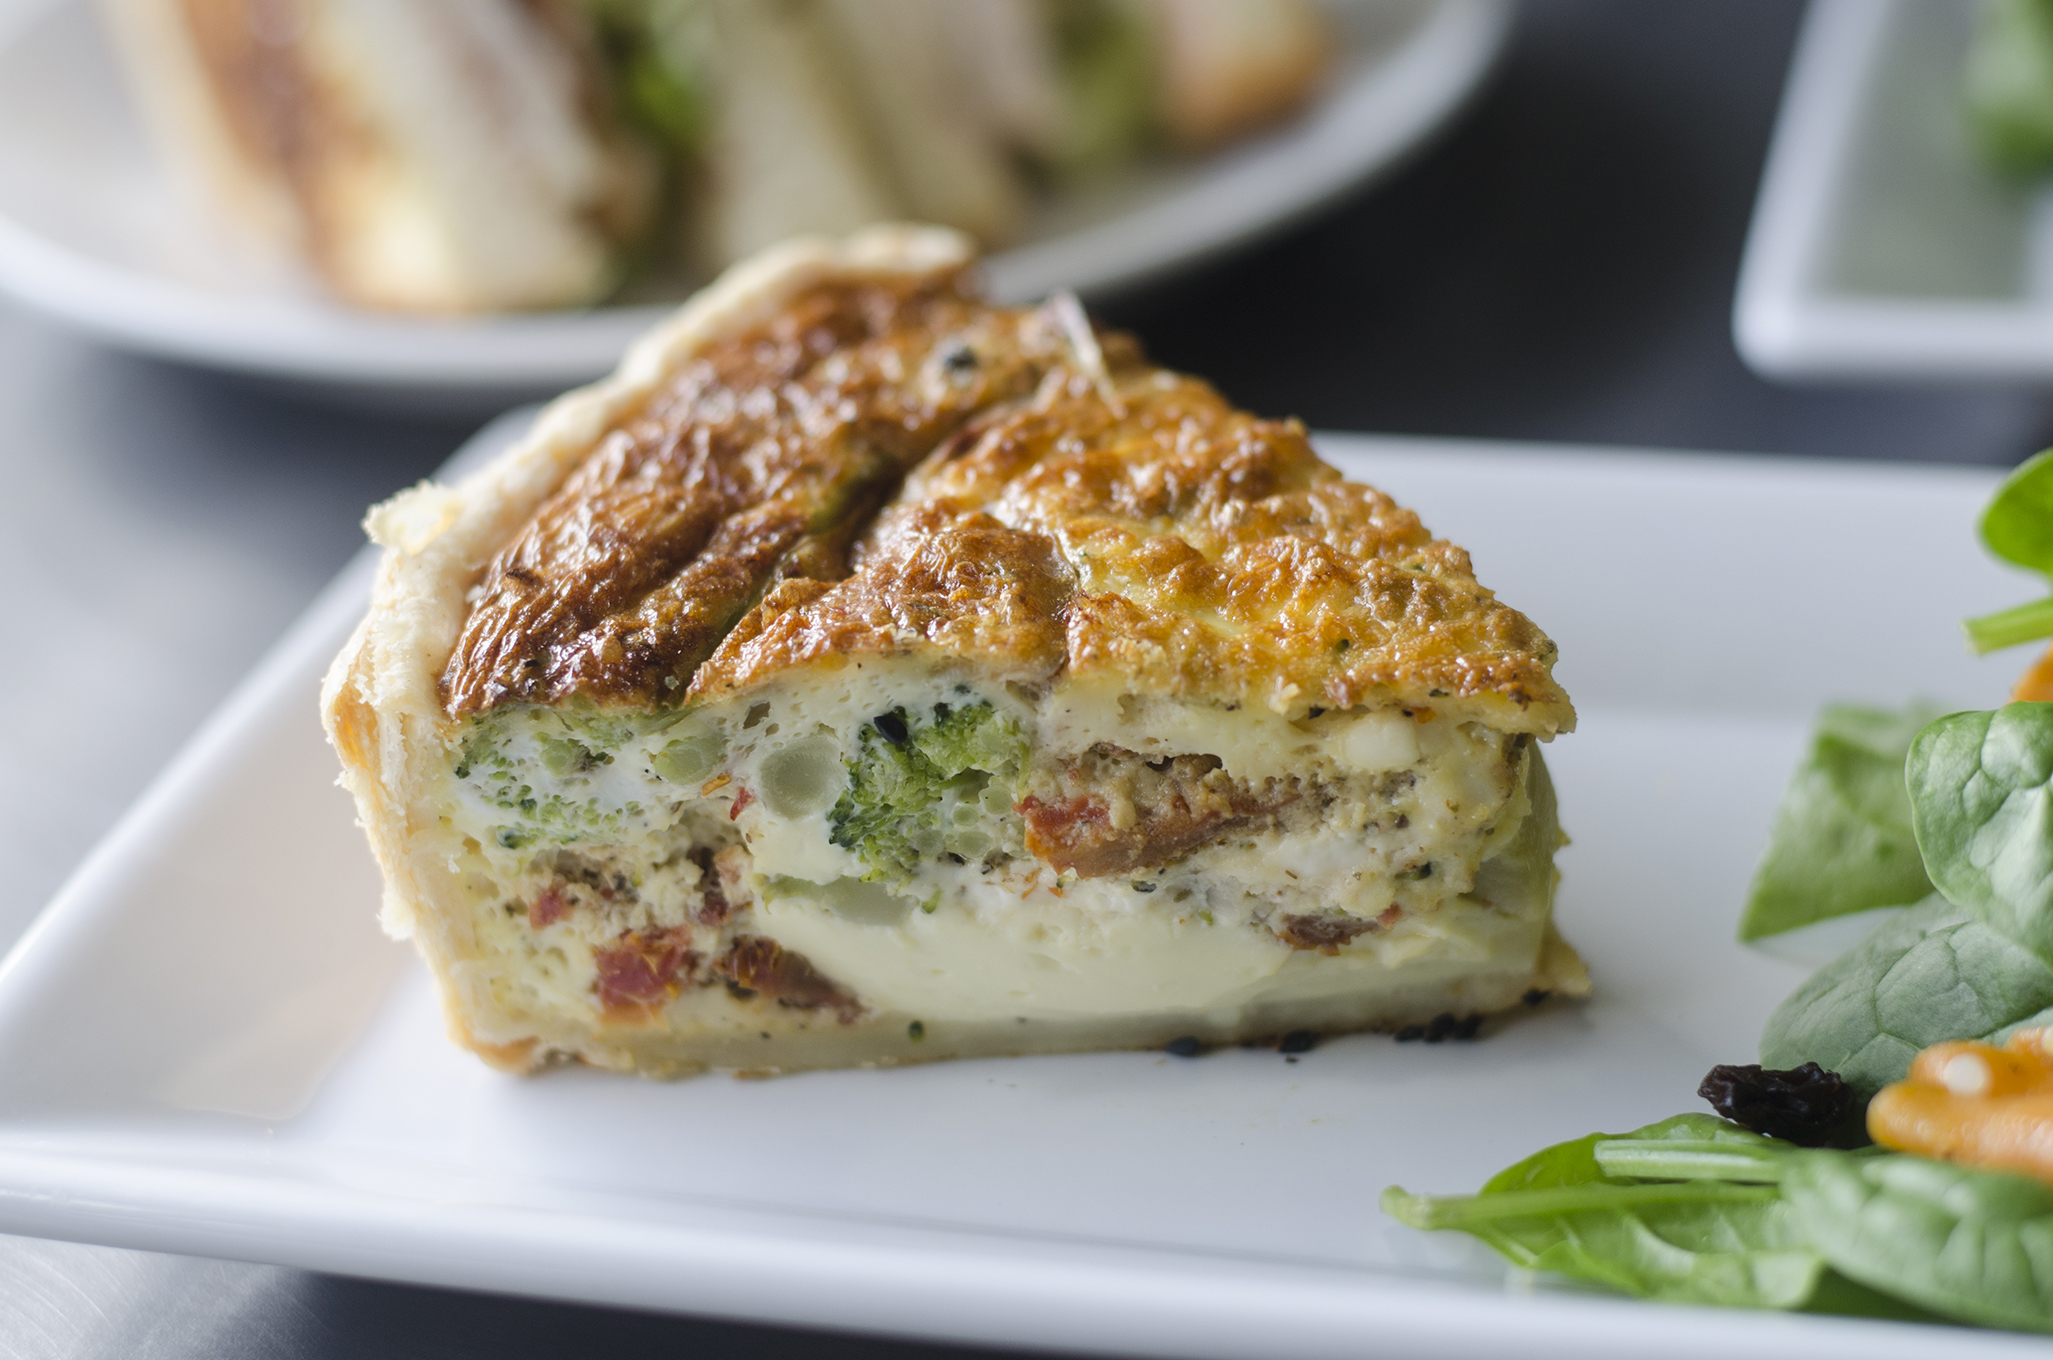 Riverside Pie Cafe offers up a selection of amazing quiche.